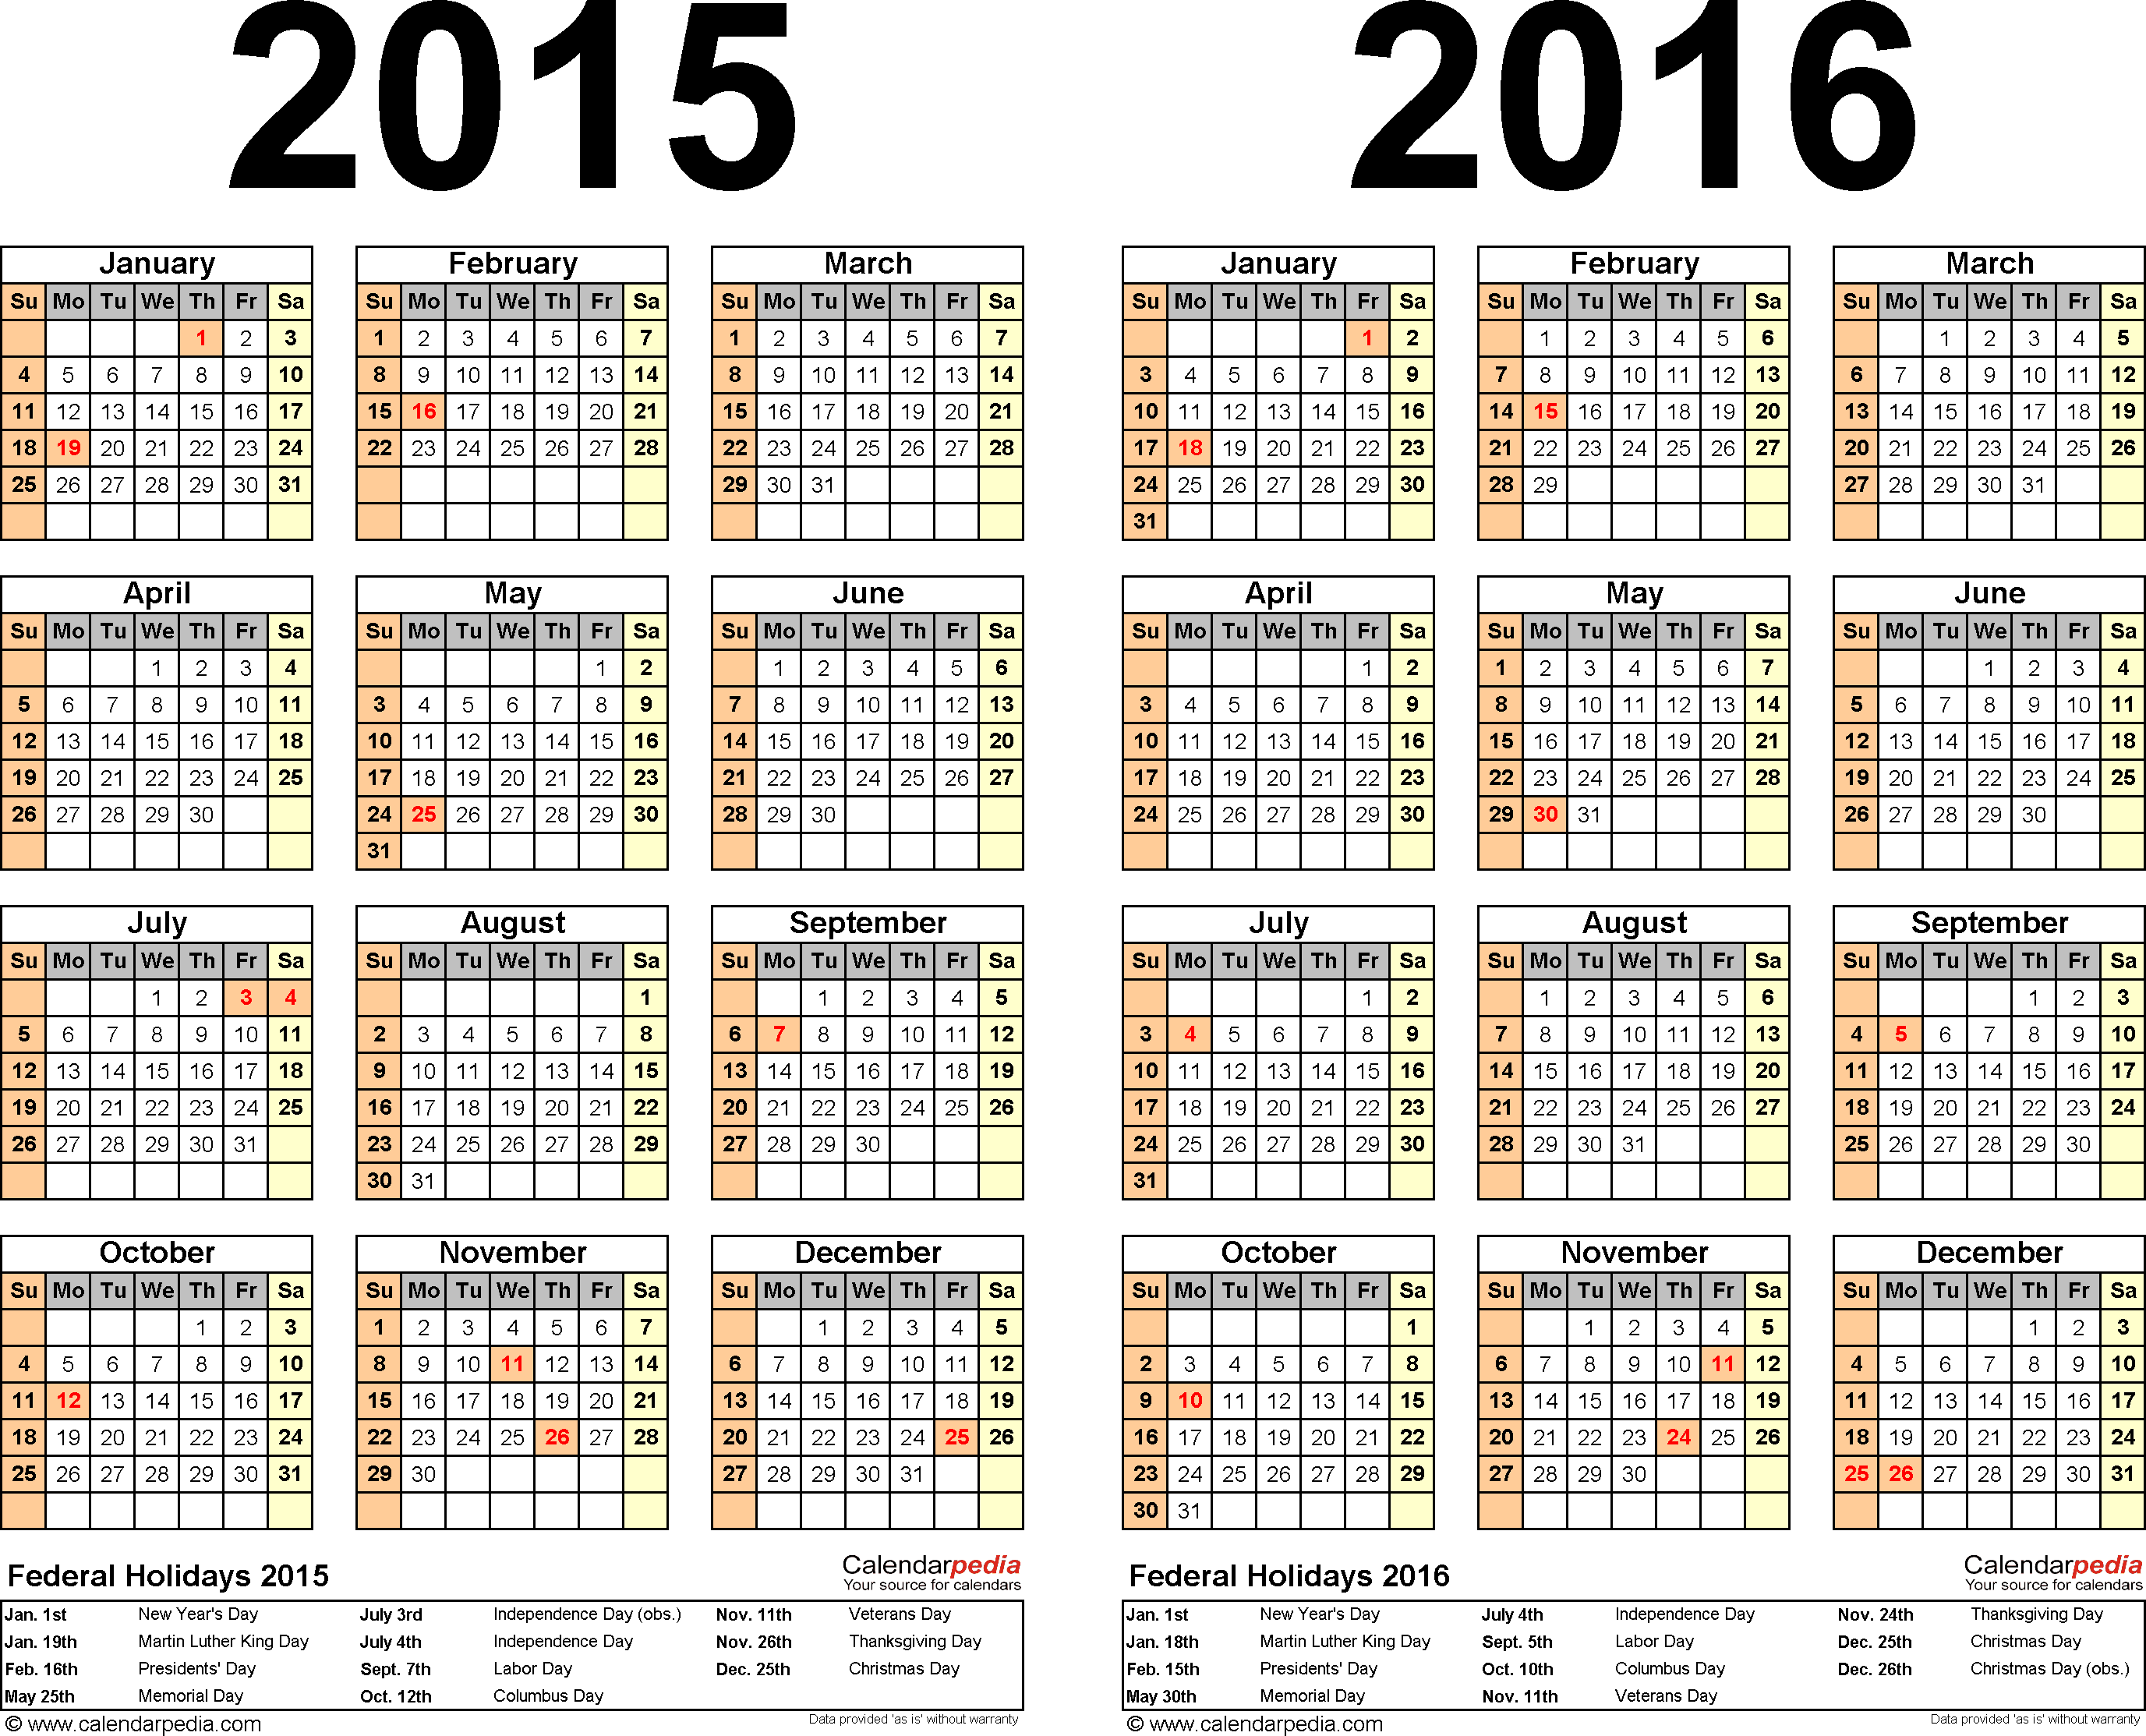 Template 3: PDF template for two year calendar 2015/2016 (landscape orientation, 1 page)